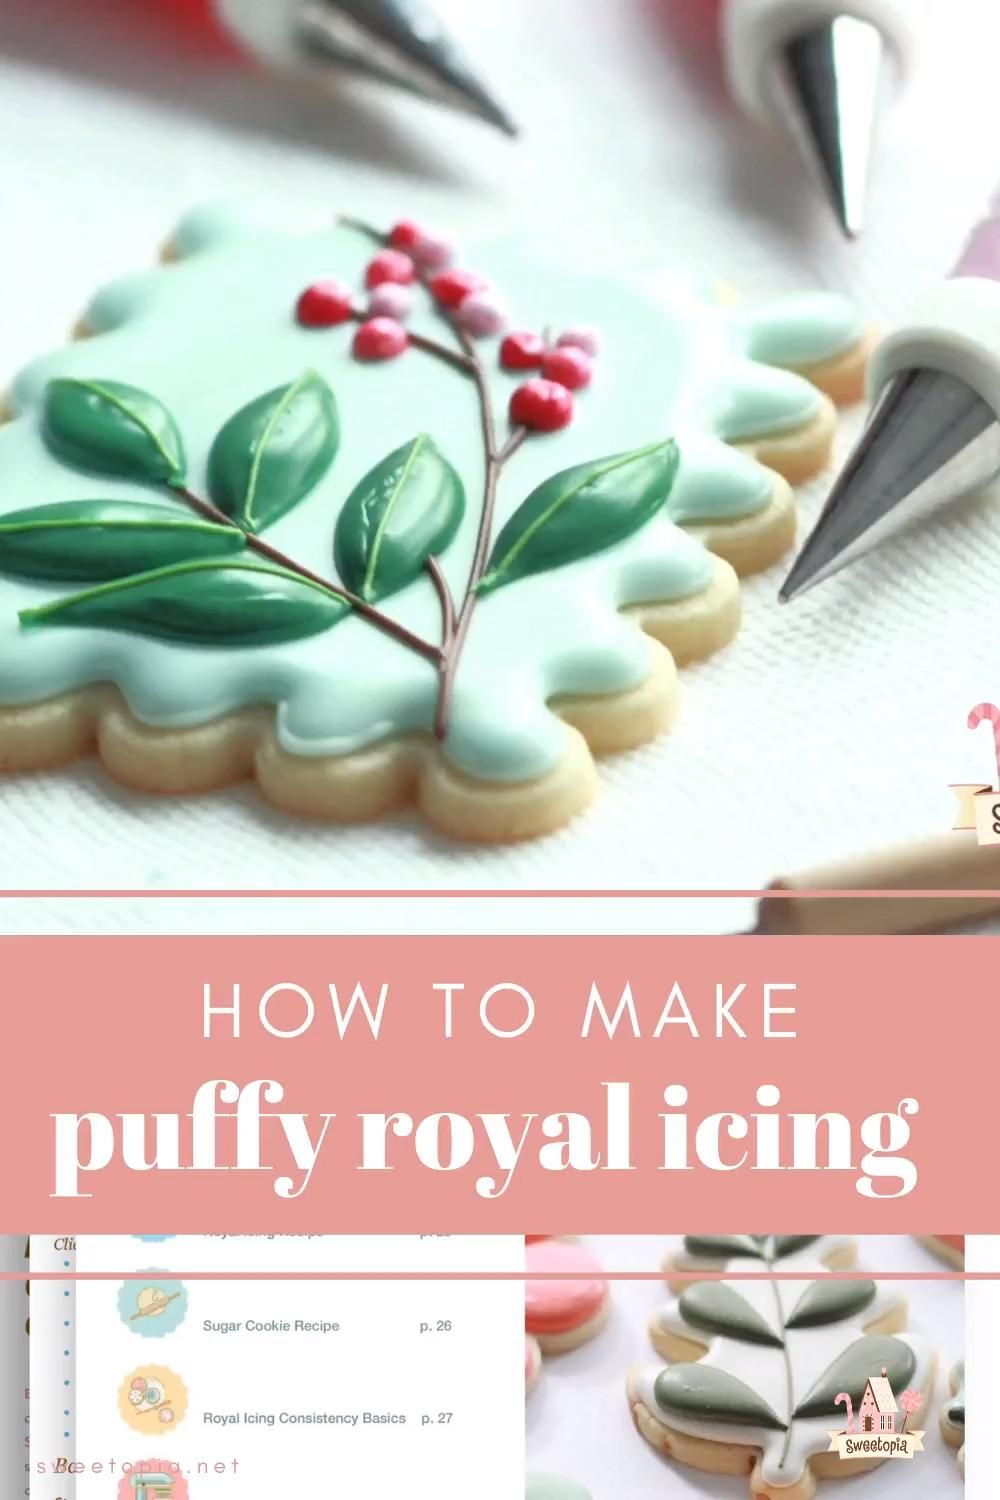 How to Make Puffy Royal Icing for Cookie Decoratin